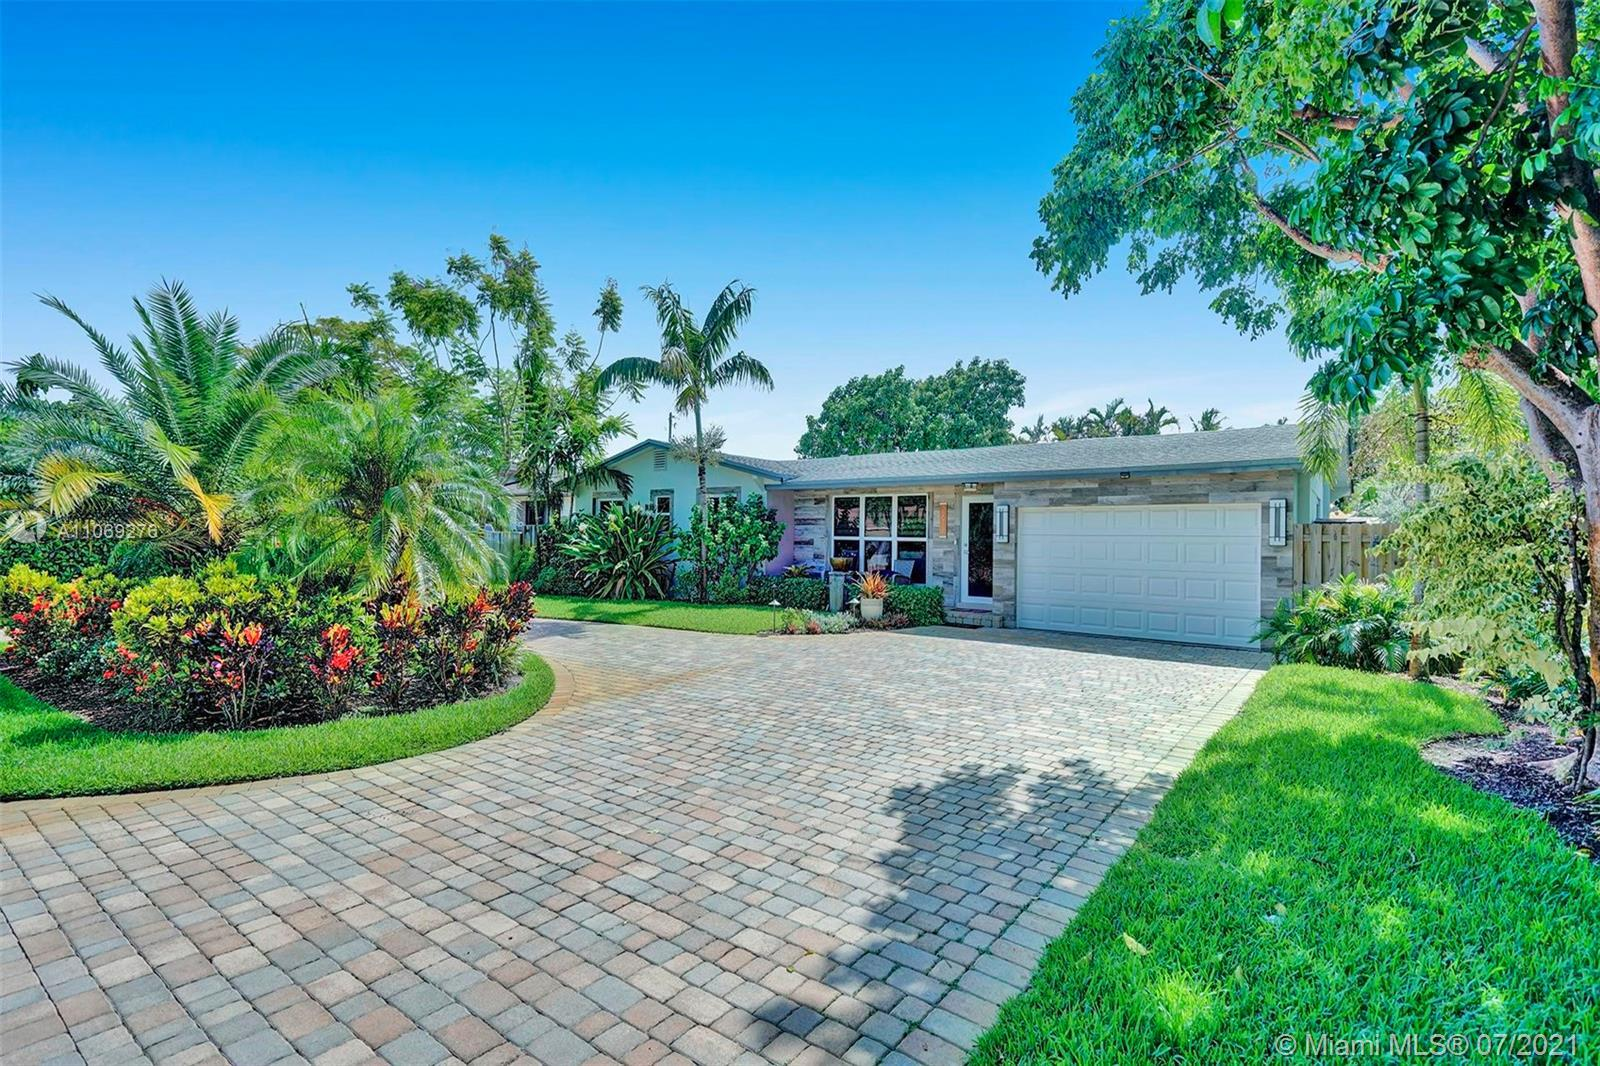 WOW, it exists, a sensational home with casual elegance. This 2050 sq ft, 3 BR/2.5 bath home, is wha